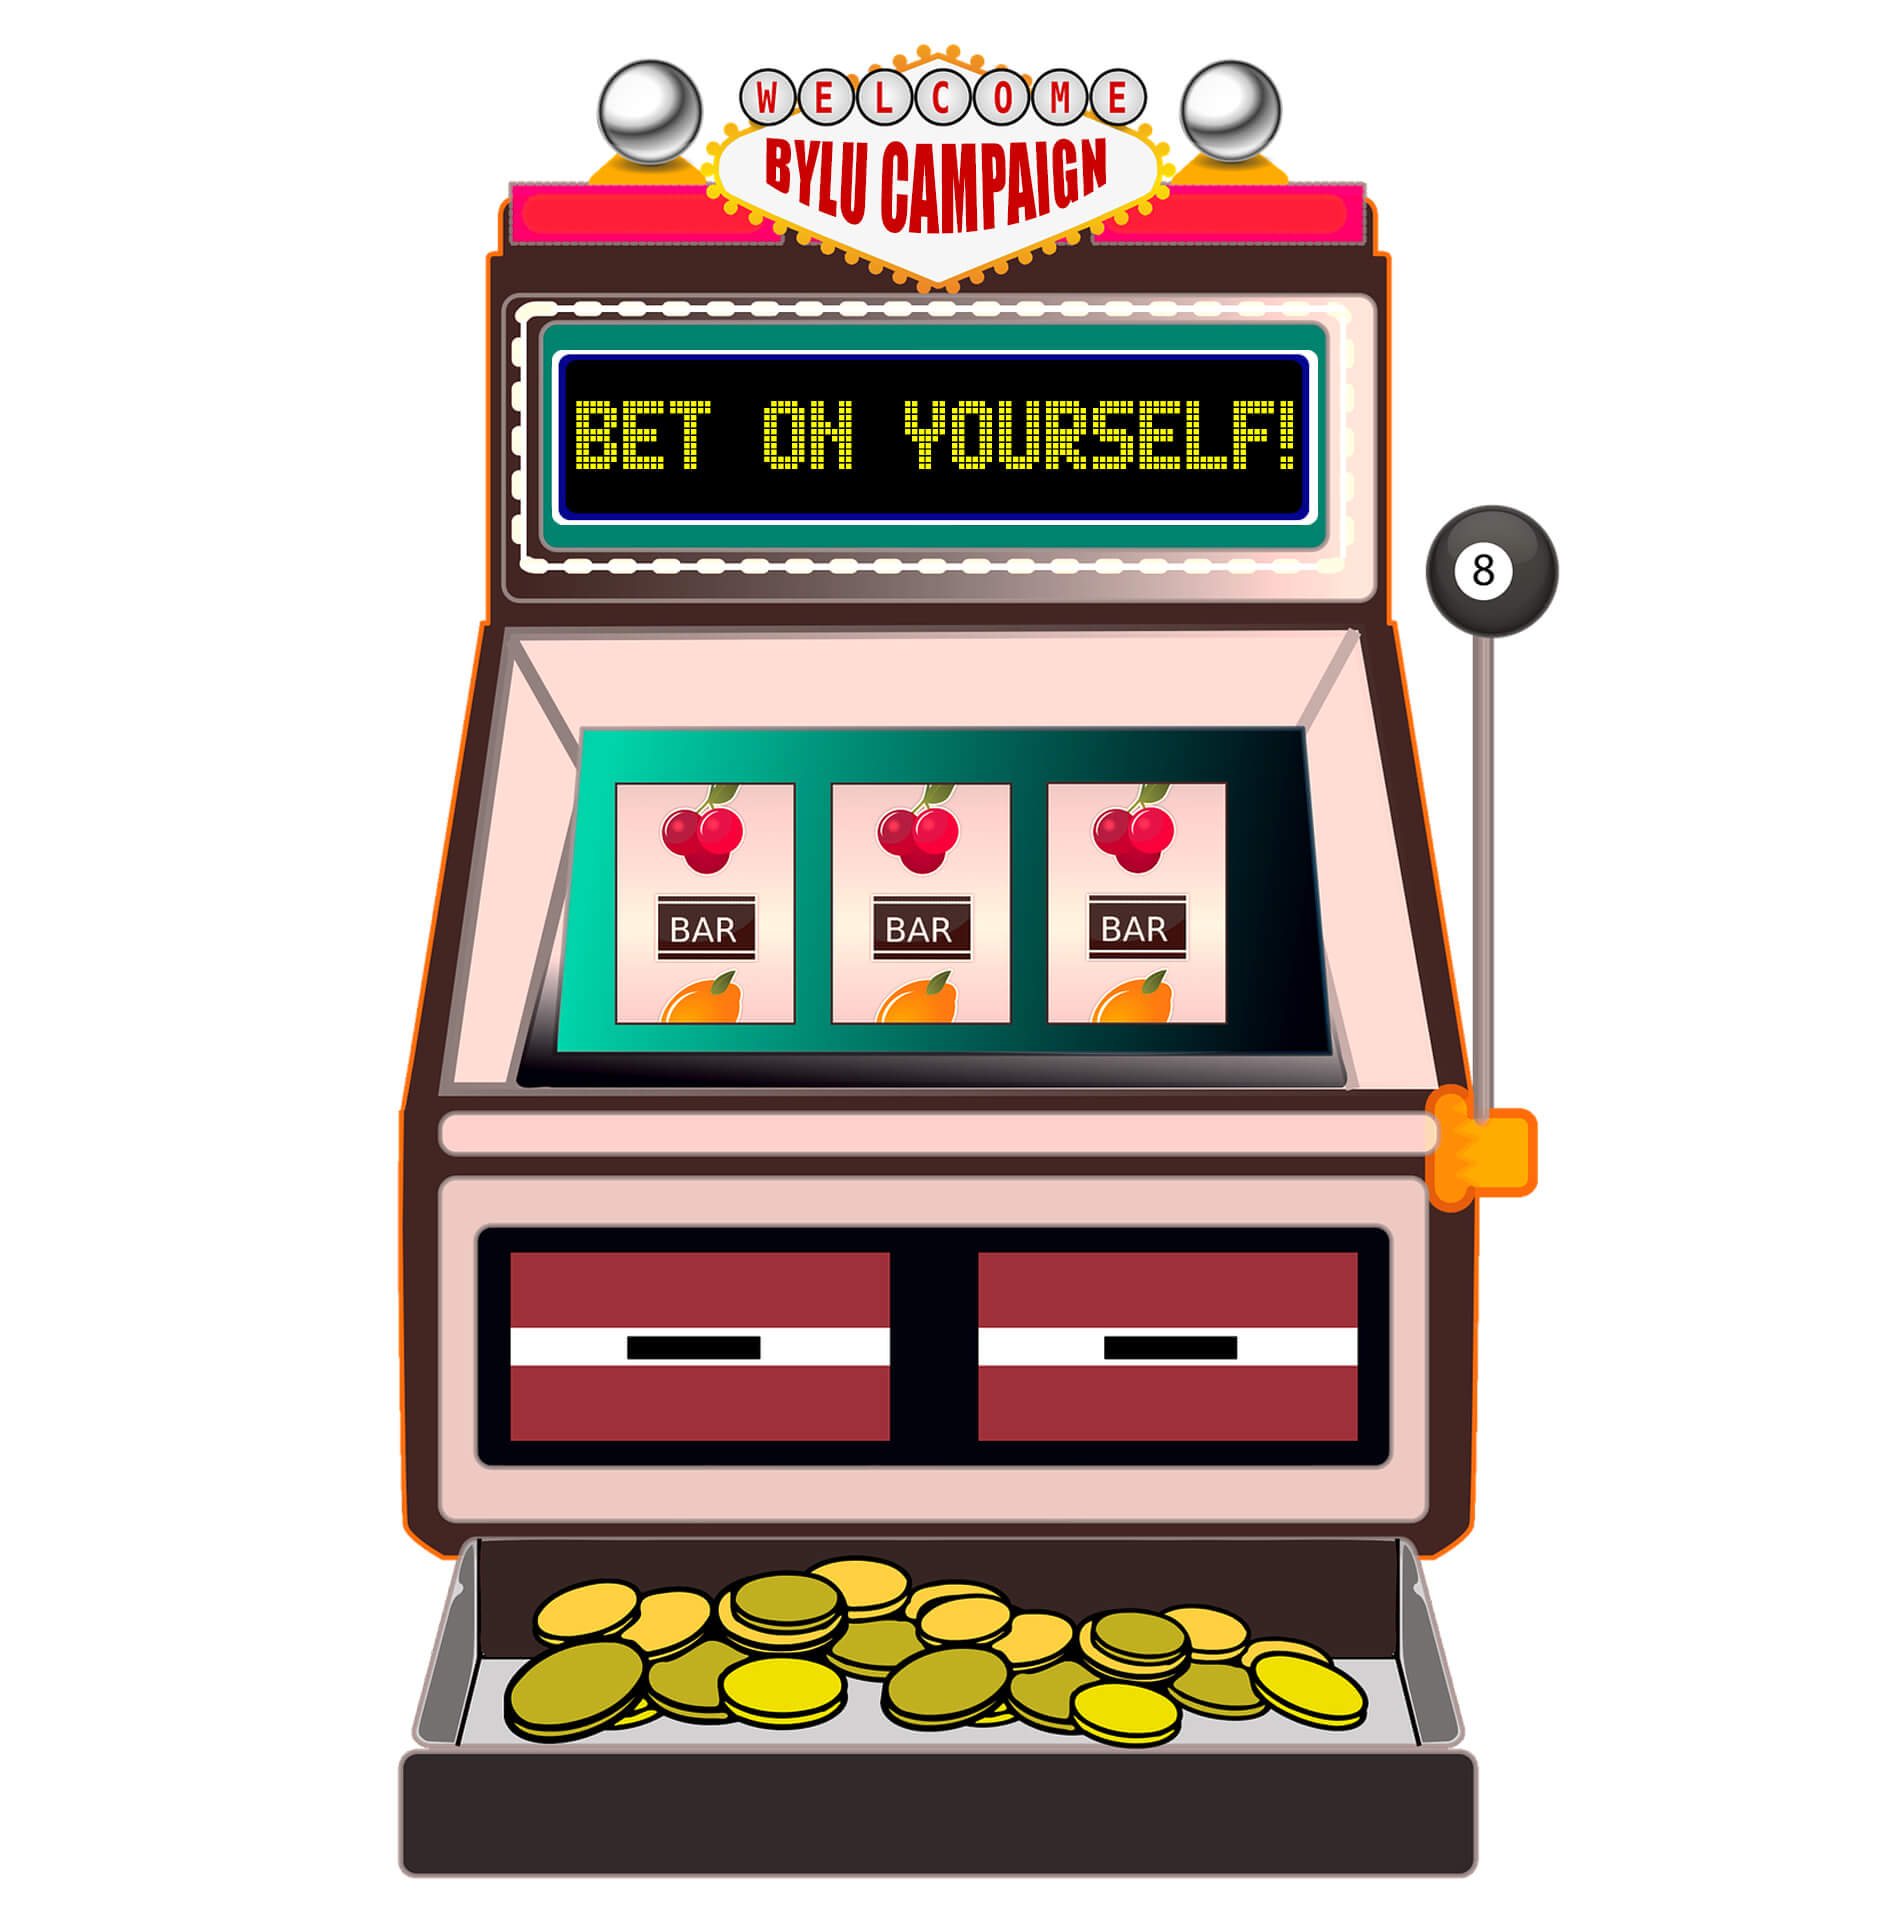 Betting on yourself is the fastest way to achieve financial freedom. Give yourself permission to chase your dream and believe that you are enough.